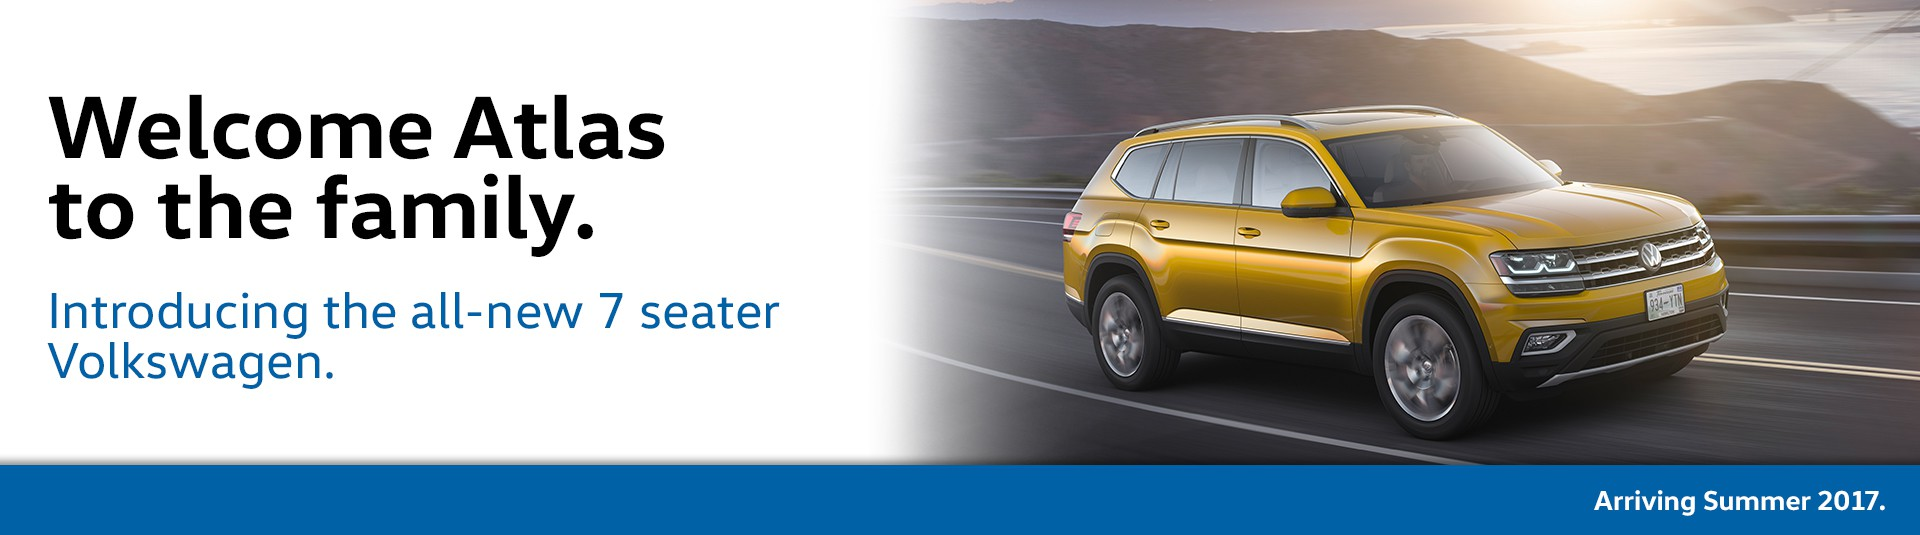 Introducing the all-new 7-seater Volkswagen Atlas!